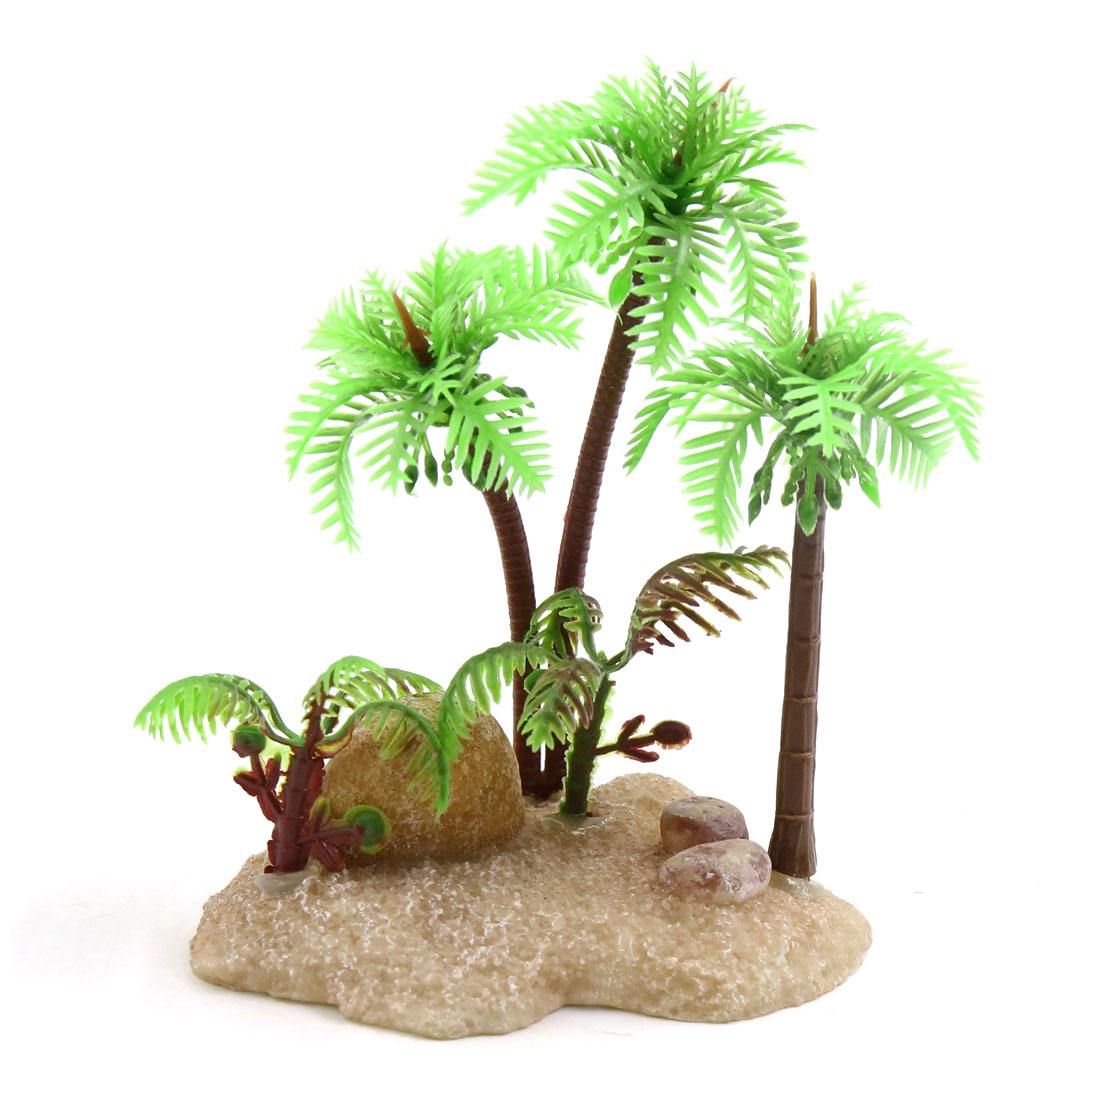 Green Plastic Terrarium Plant Decoration Coconut Tree for Reptiles Amphibians